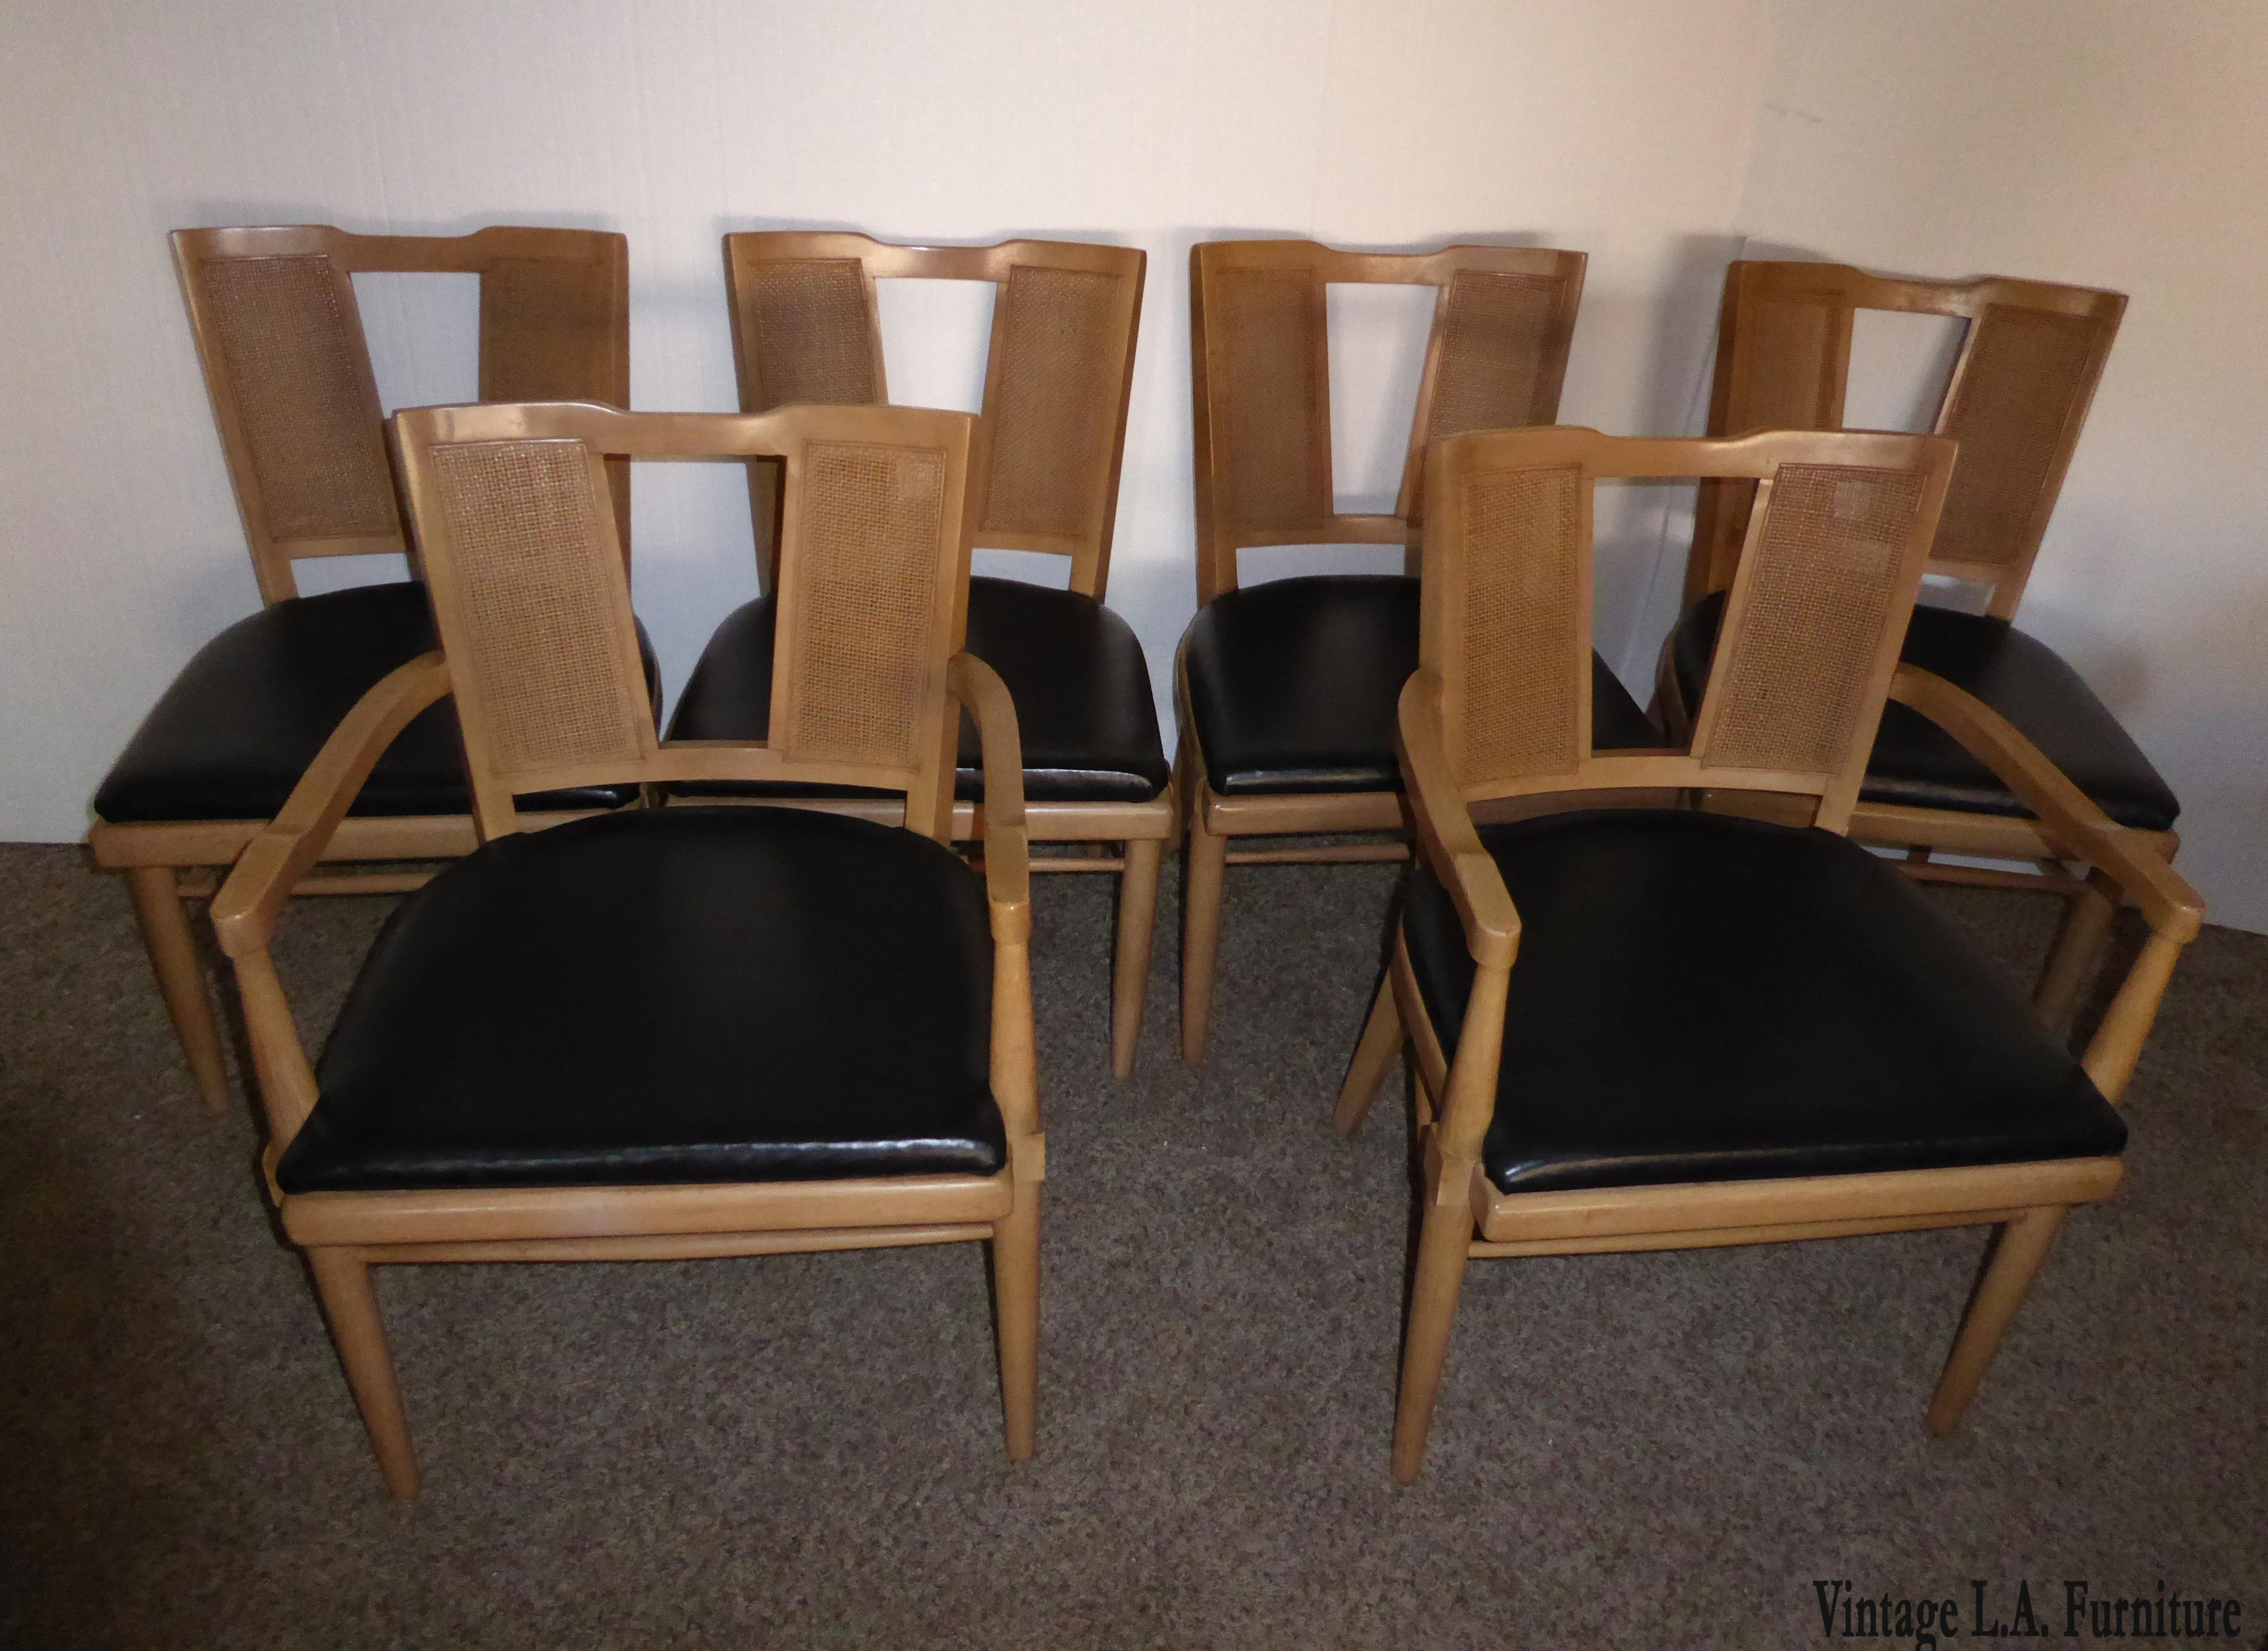 Beau Set Of Six Vintage Danish Modern Style Cane Back Dining Chairs By American  Furniture Company Gorgeous